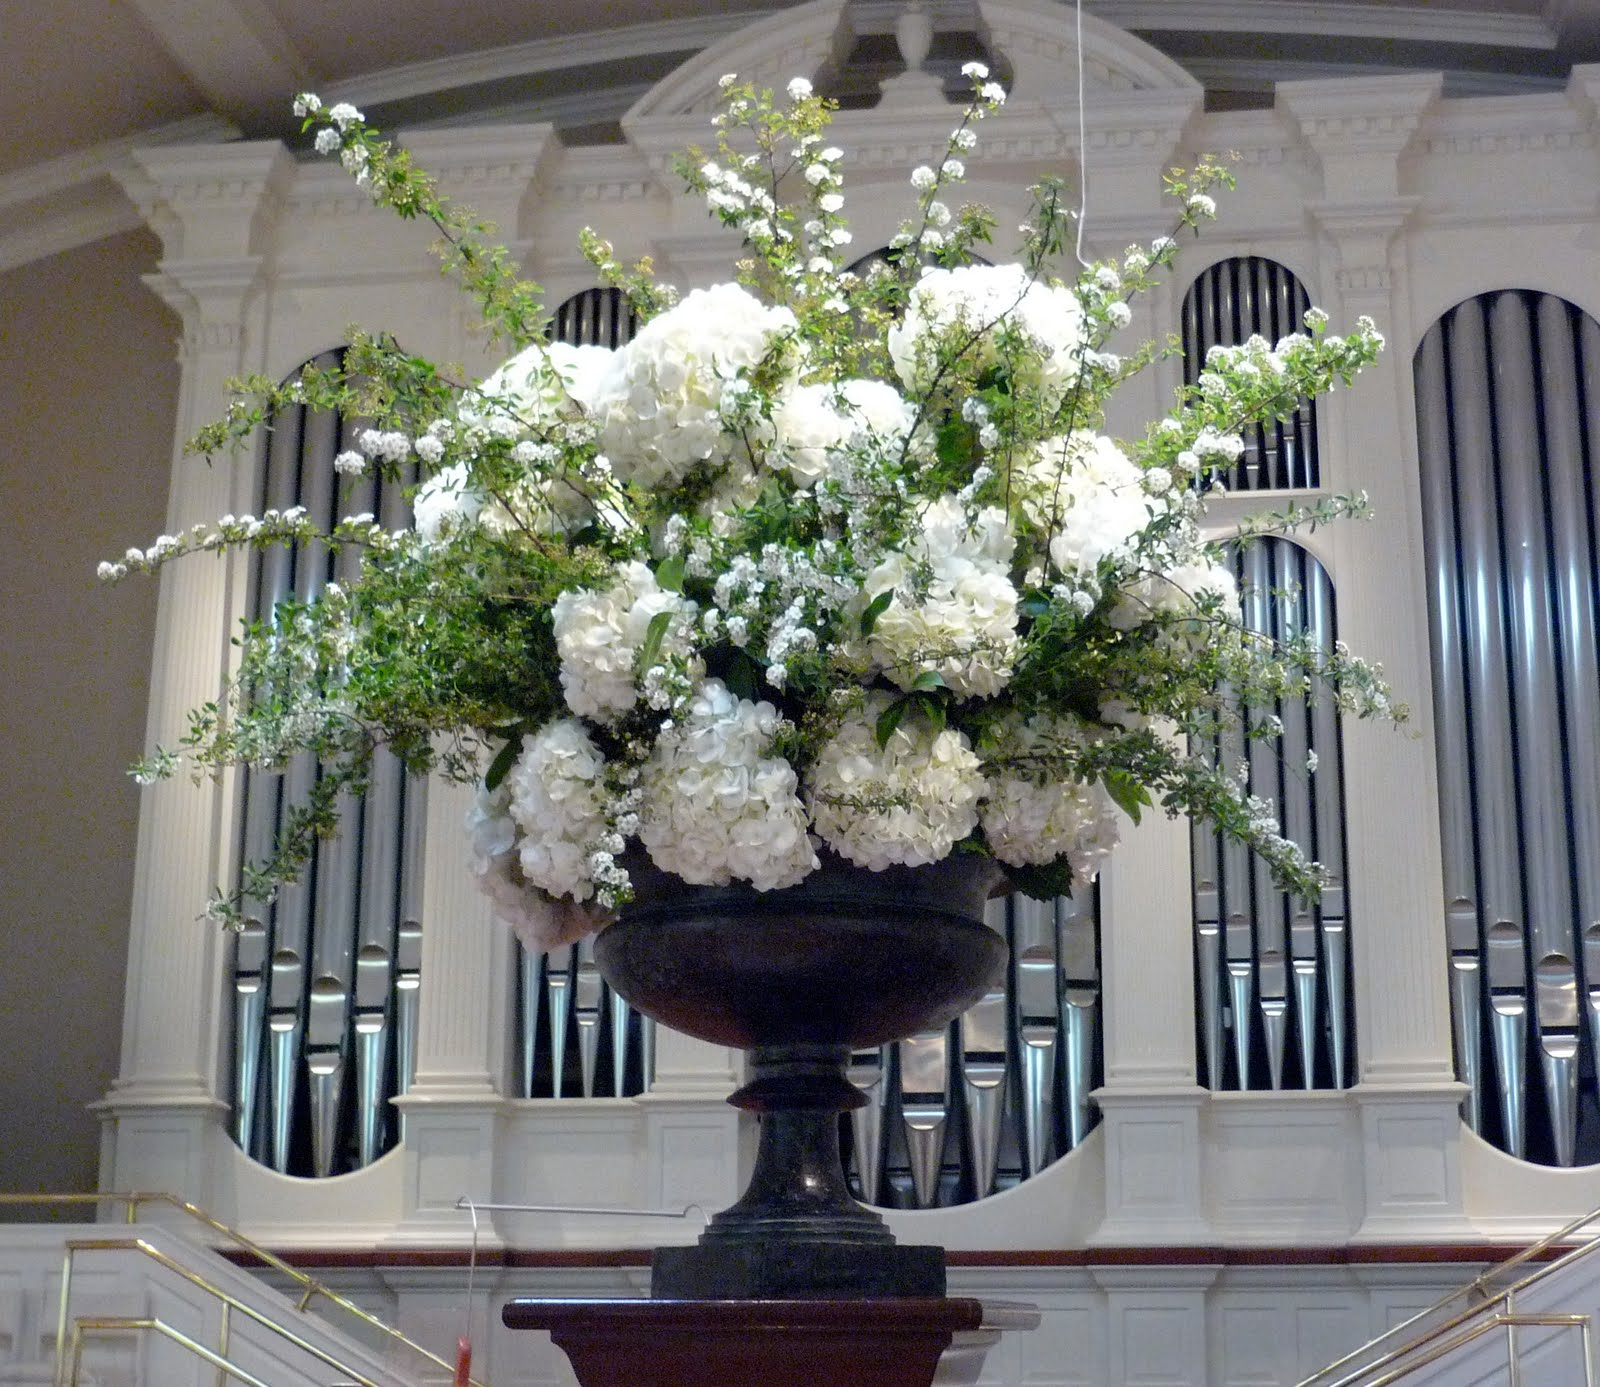 Wedding Altar Flowers Photo: Ceremony Flower, Altar Arrangement, Wedding Altars, Altar